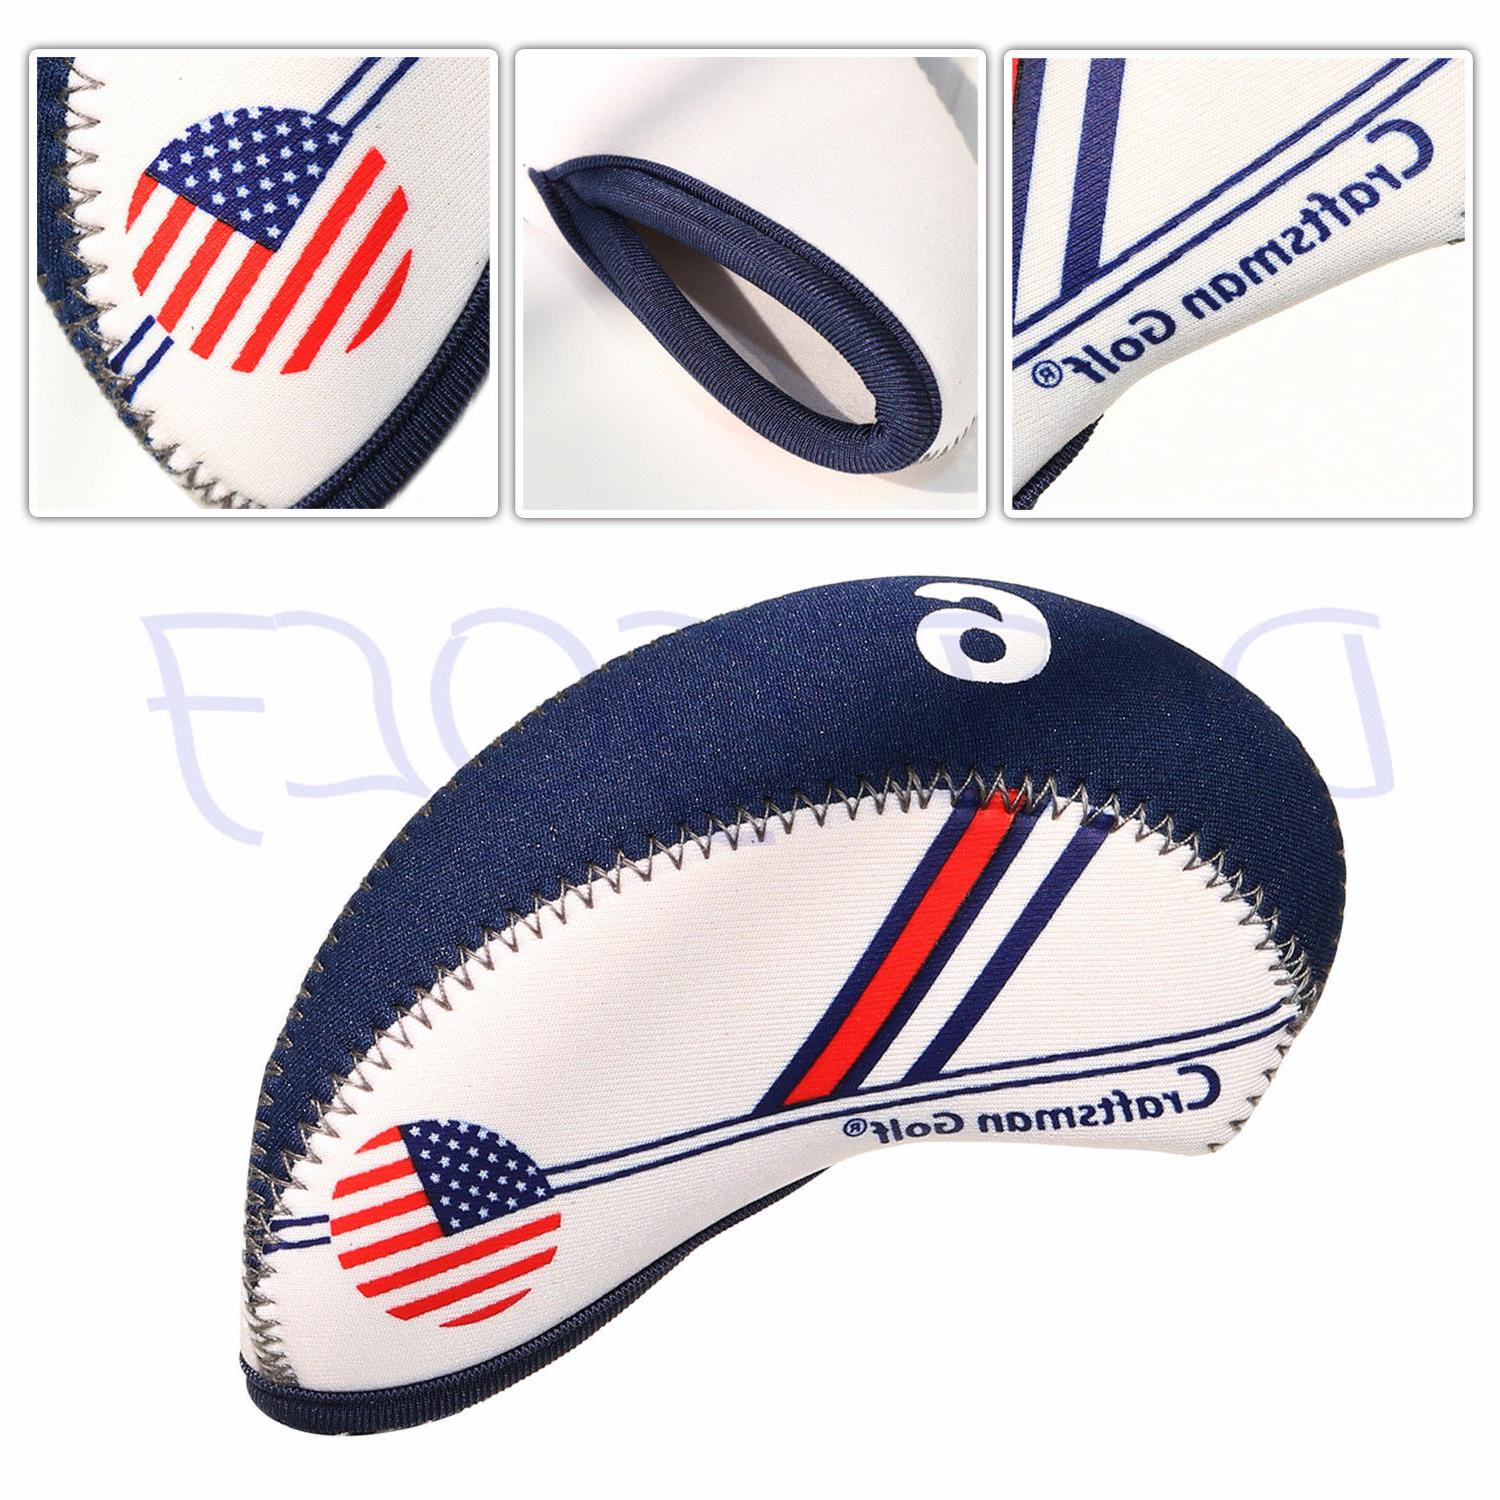 USA GOLF Head Headcovers Protection For